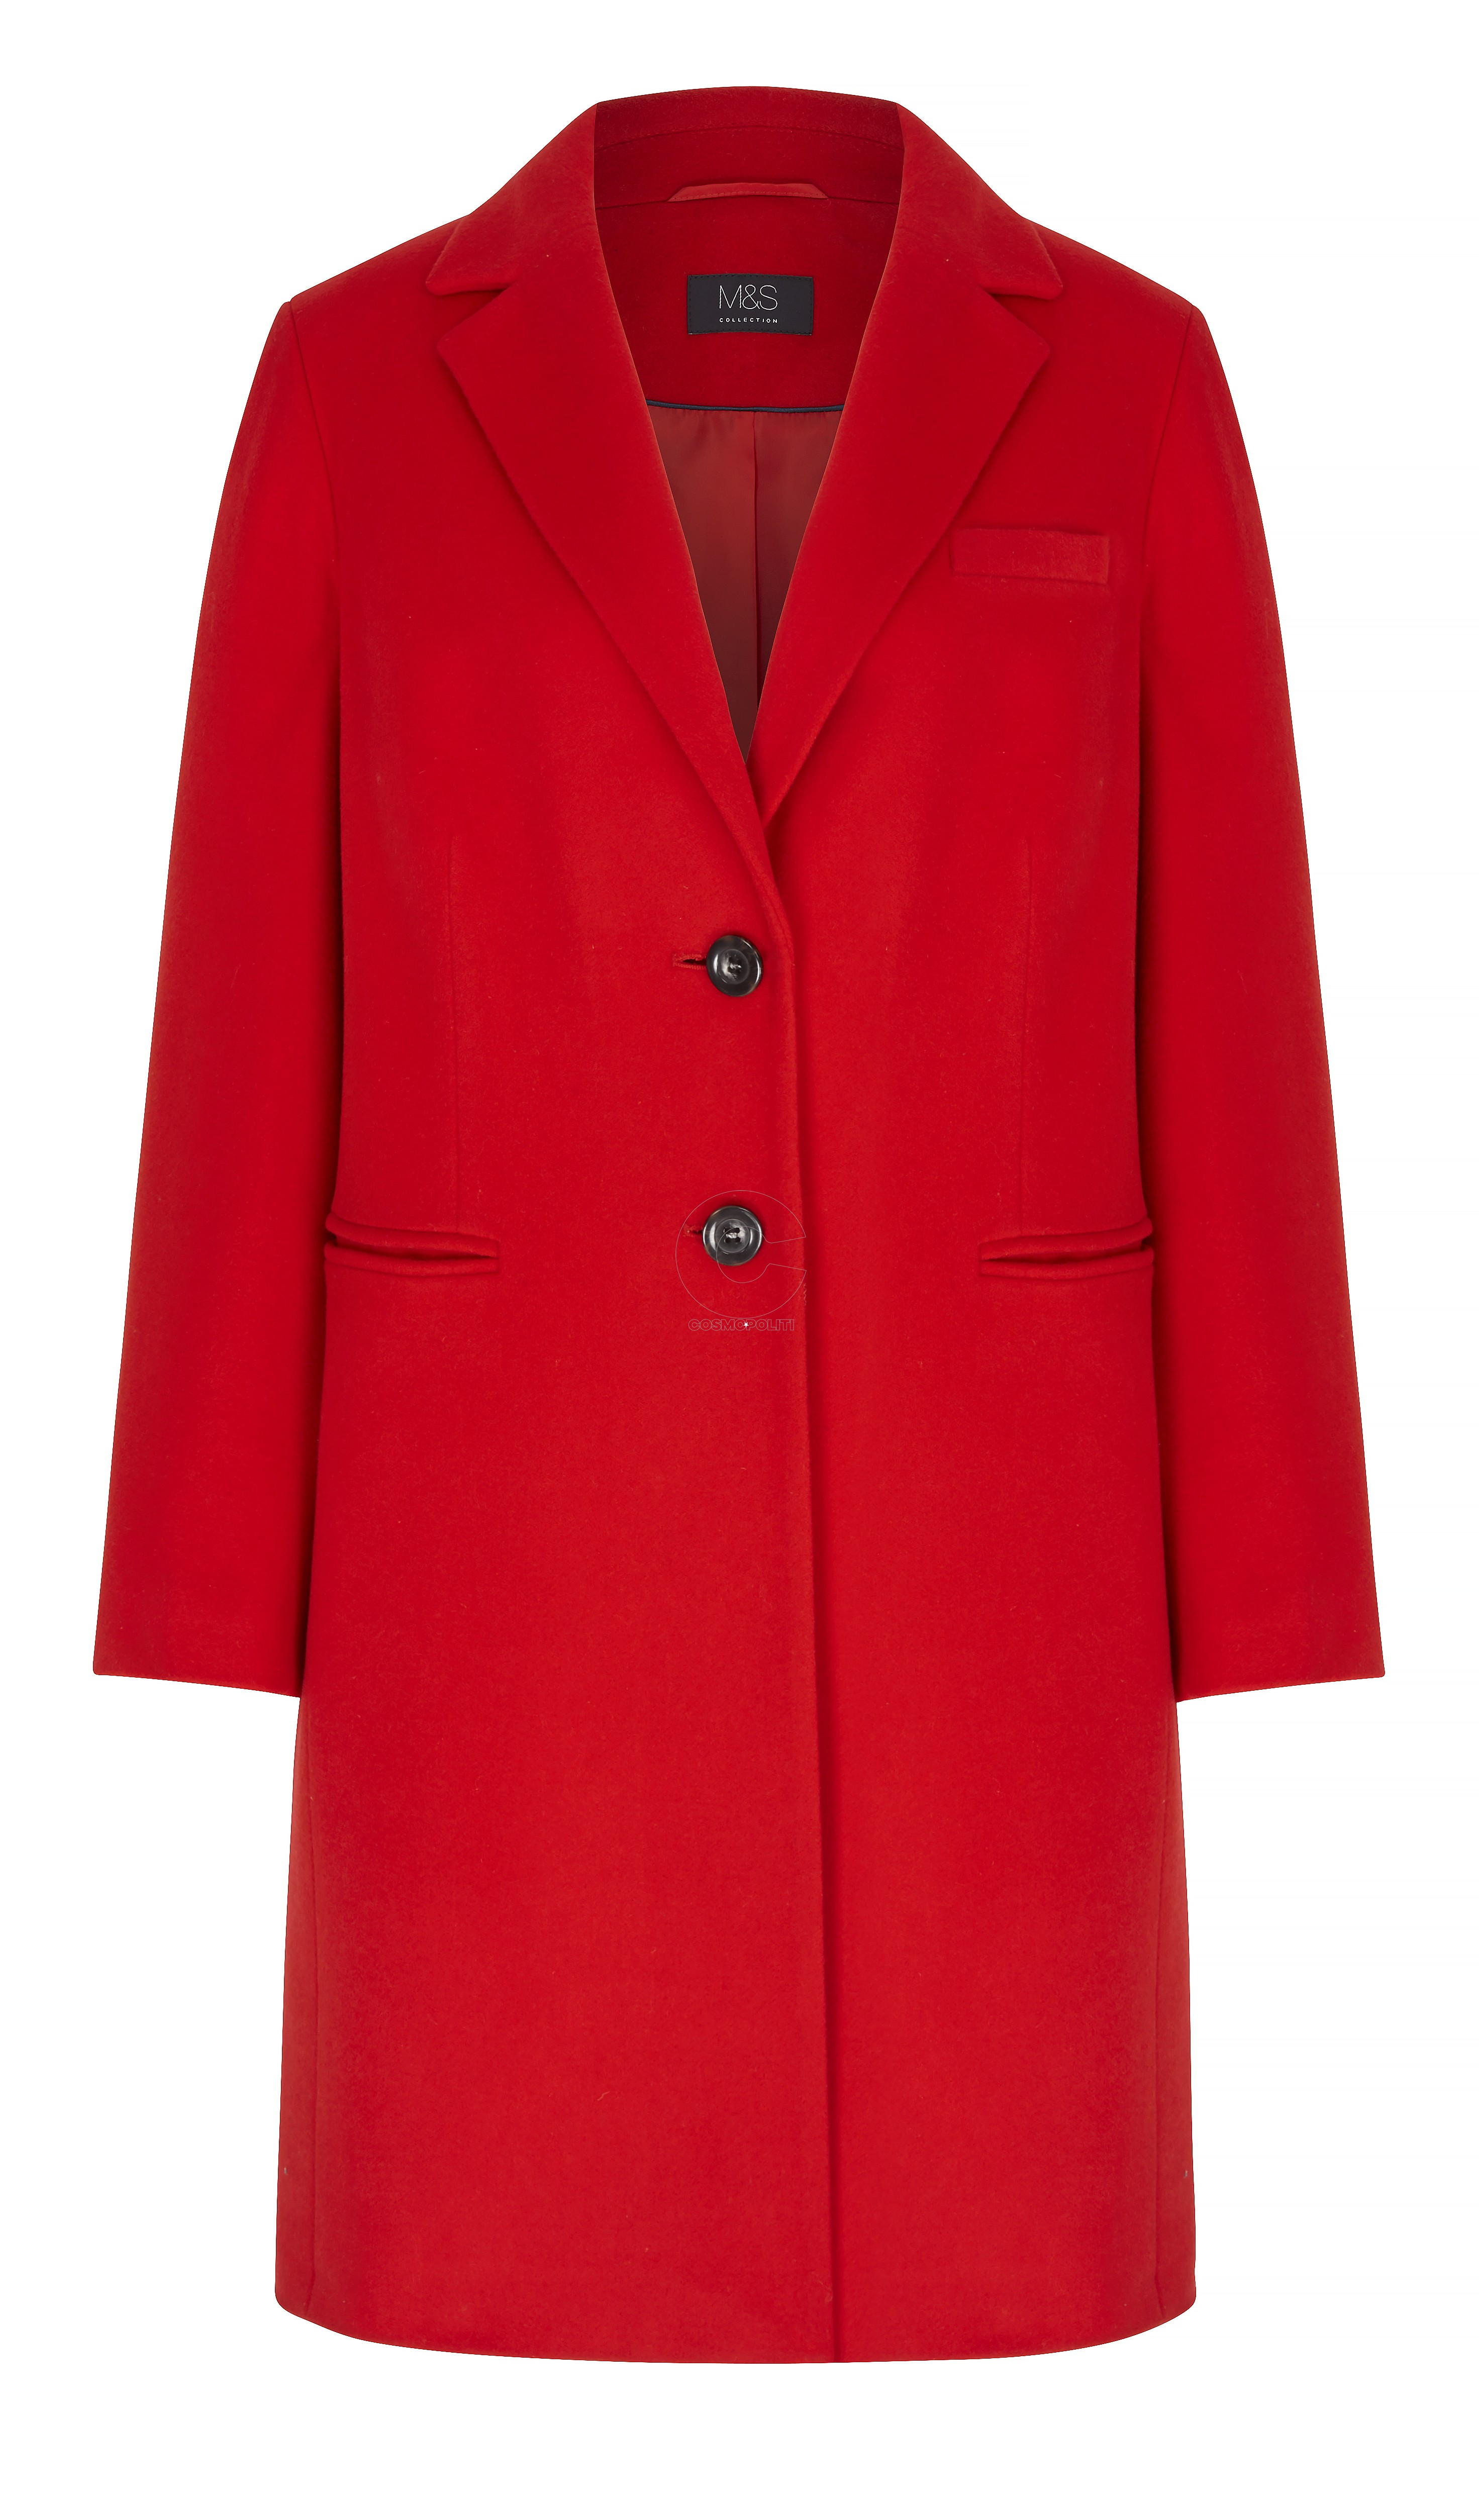 M&S COLLECTION RED CASHMERE BLEND COAT